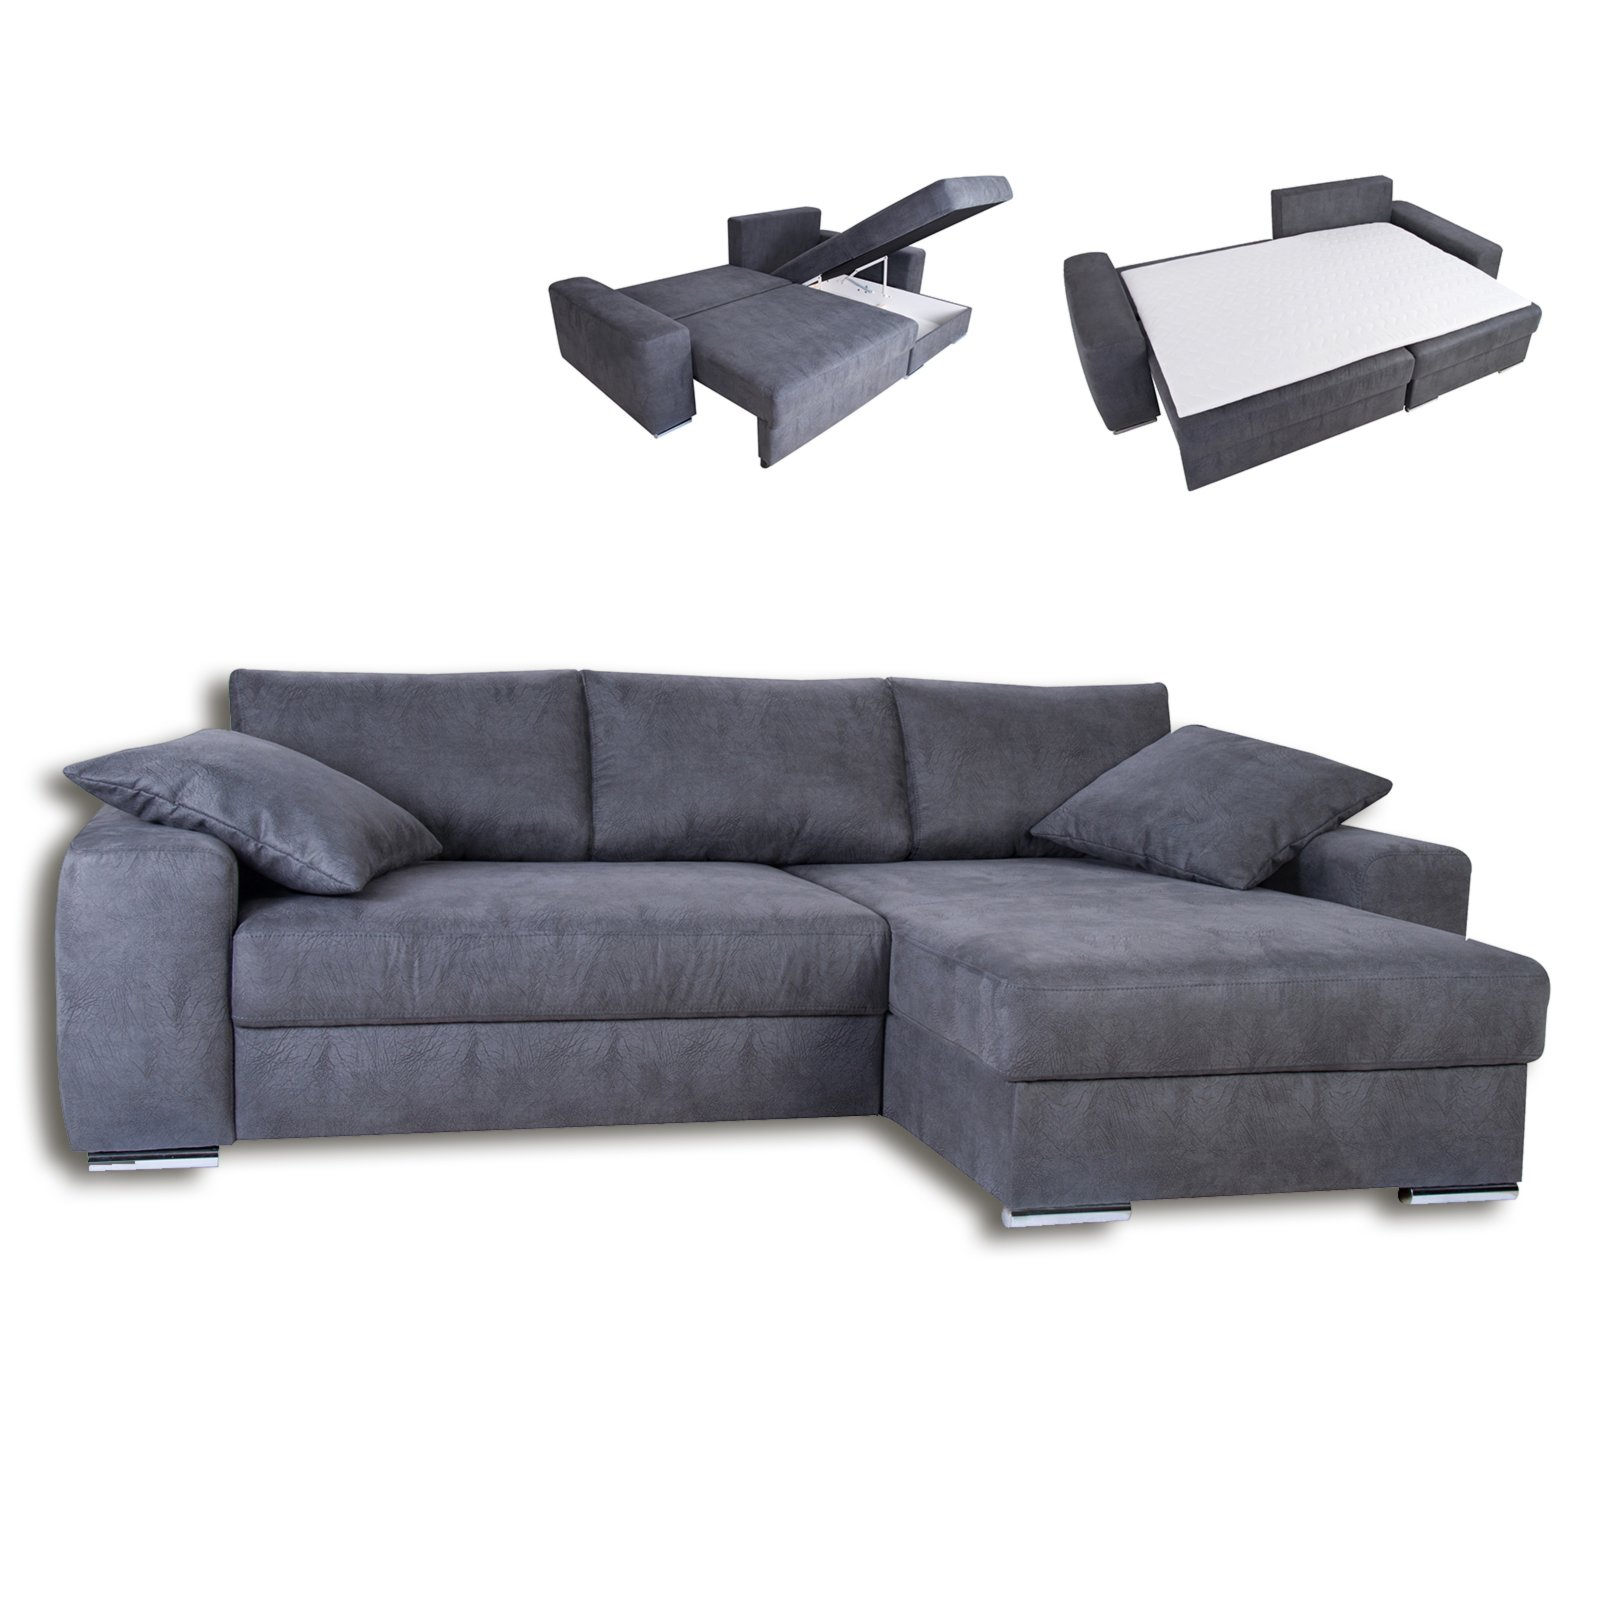 boxspring ecksofa grau liegefunktion ecksofas l form sofas couches m bel roller. Black Bedroom Furniture Sets. Home Design Ideas